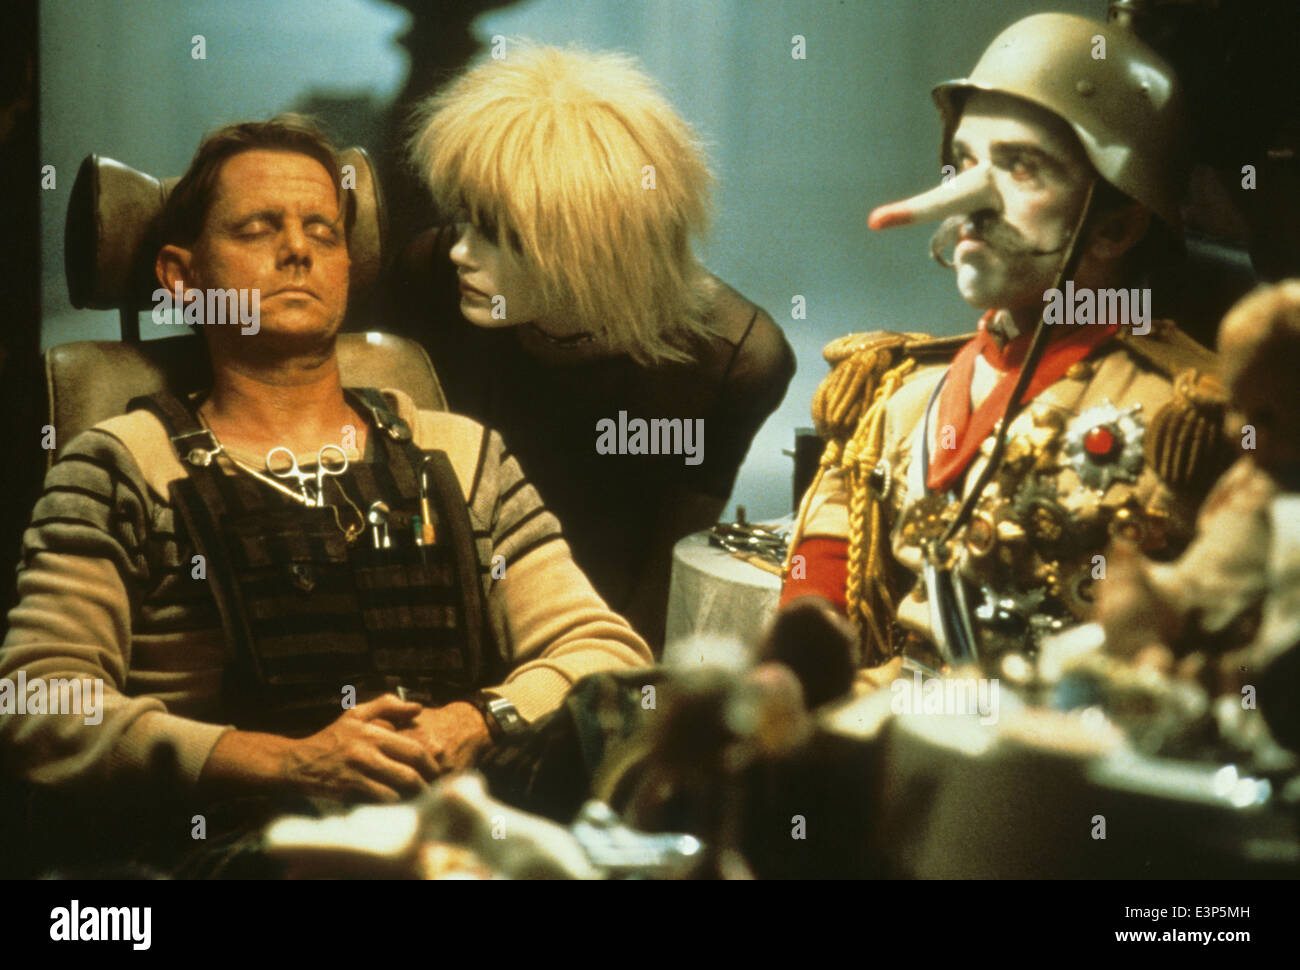 BLADE RUNNER 1982 Ladd Company/Warner Bros film with Daryl Hannah centre - Stock Image